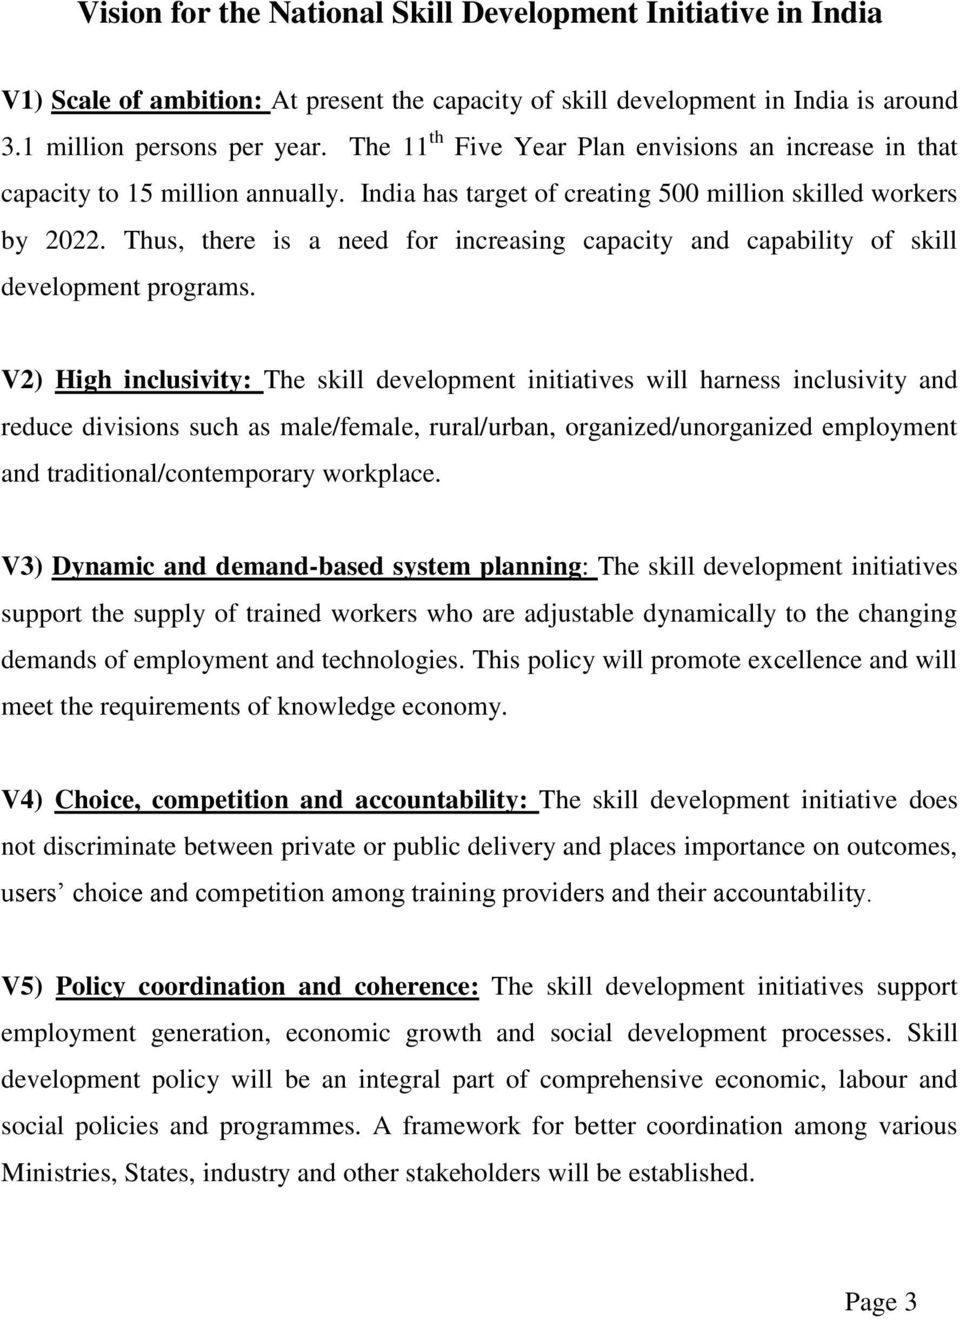 Thus, there is a need for increasing capacity and capability of skill development programs.